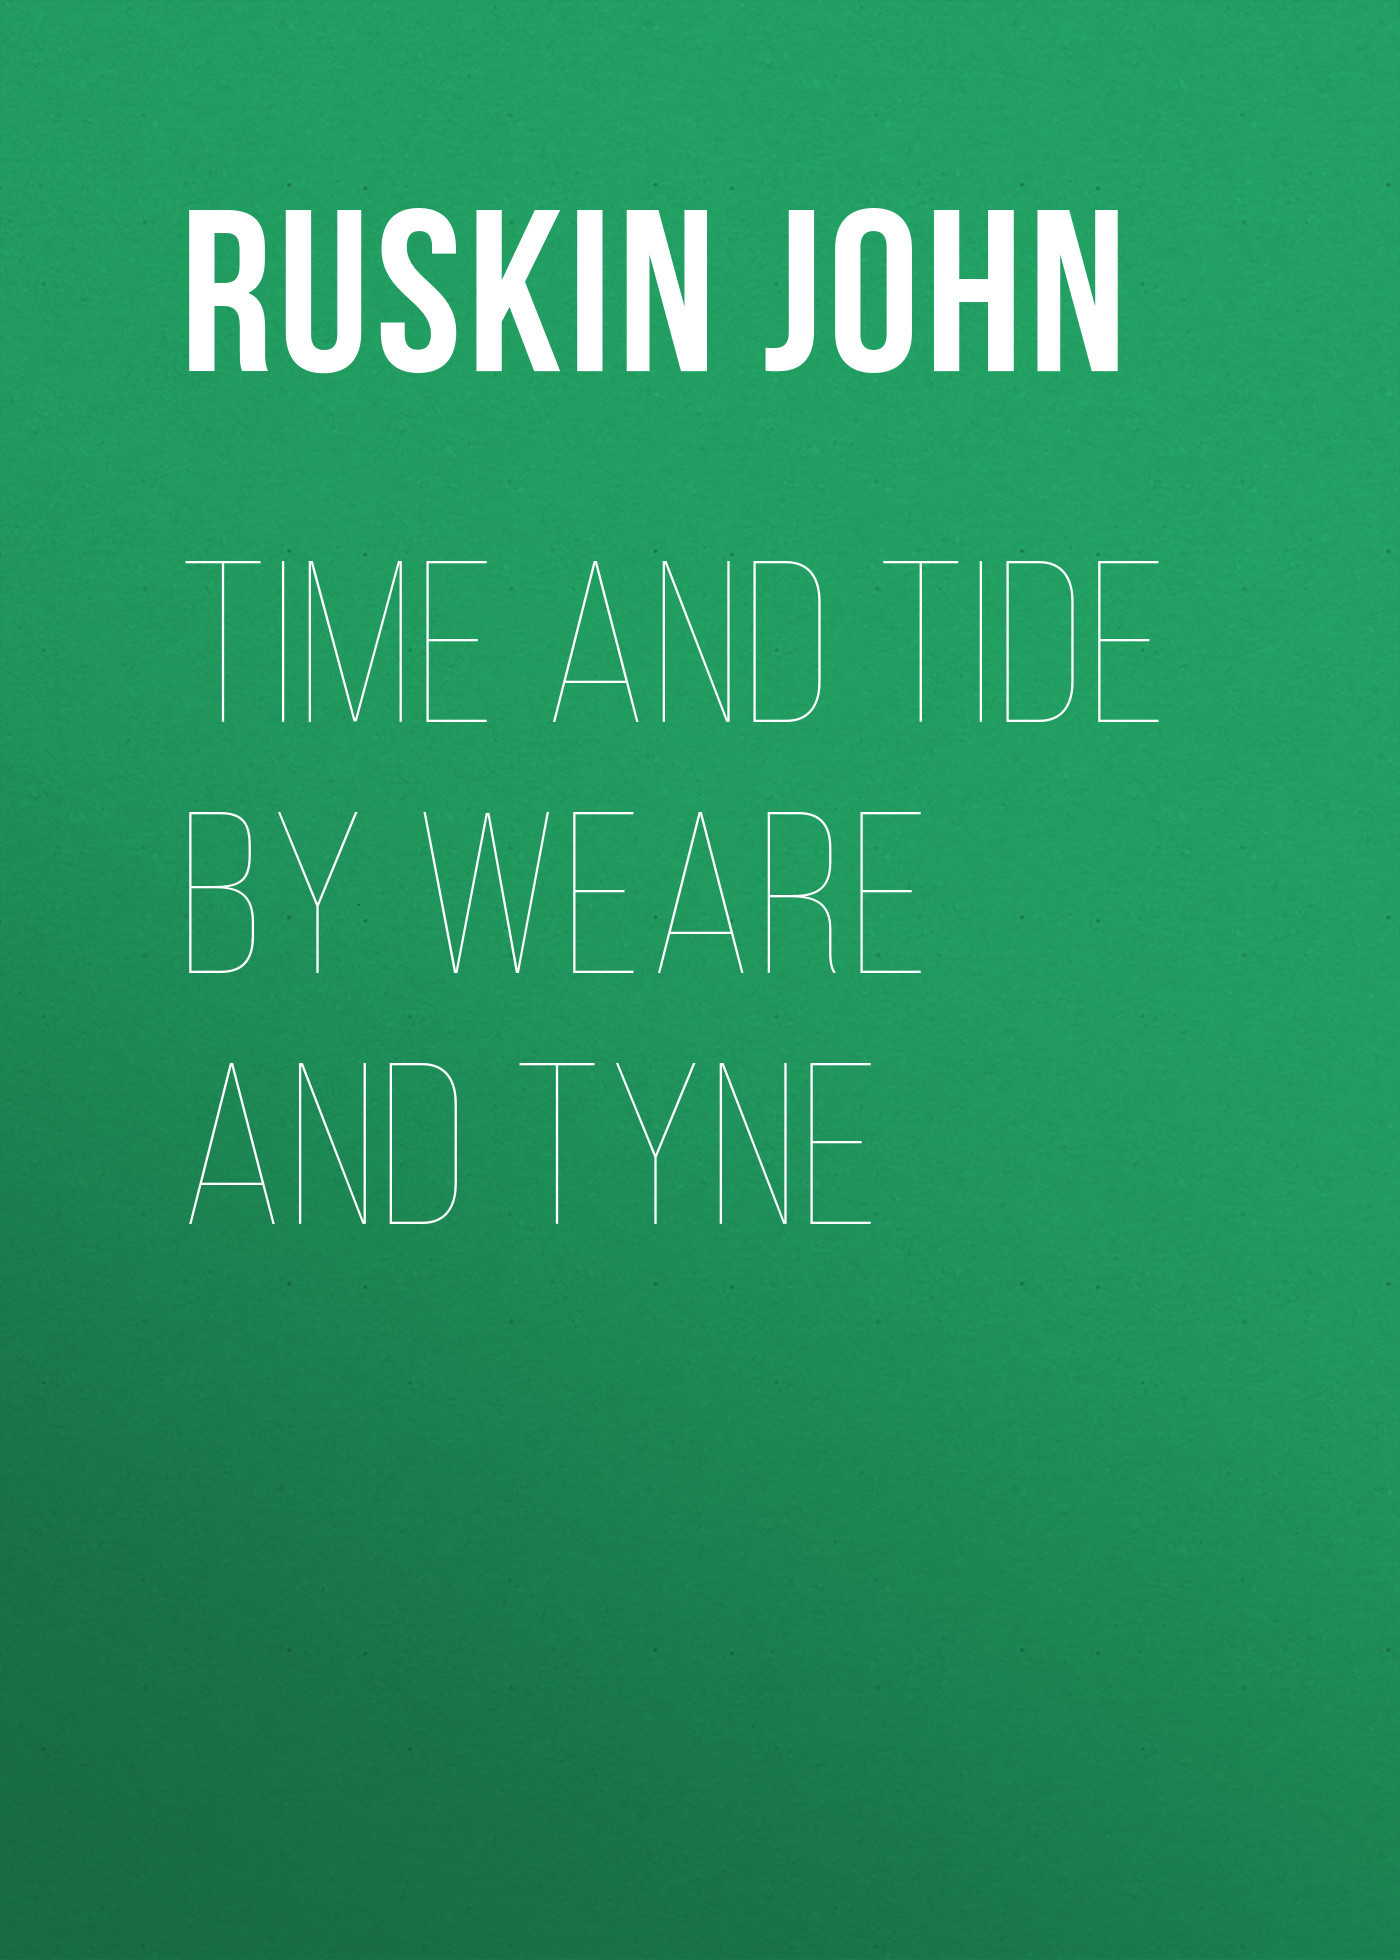 Ruskin John Time and Tide by Weare and Tyne